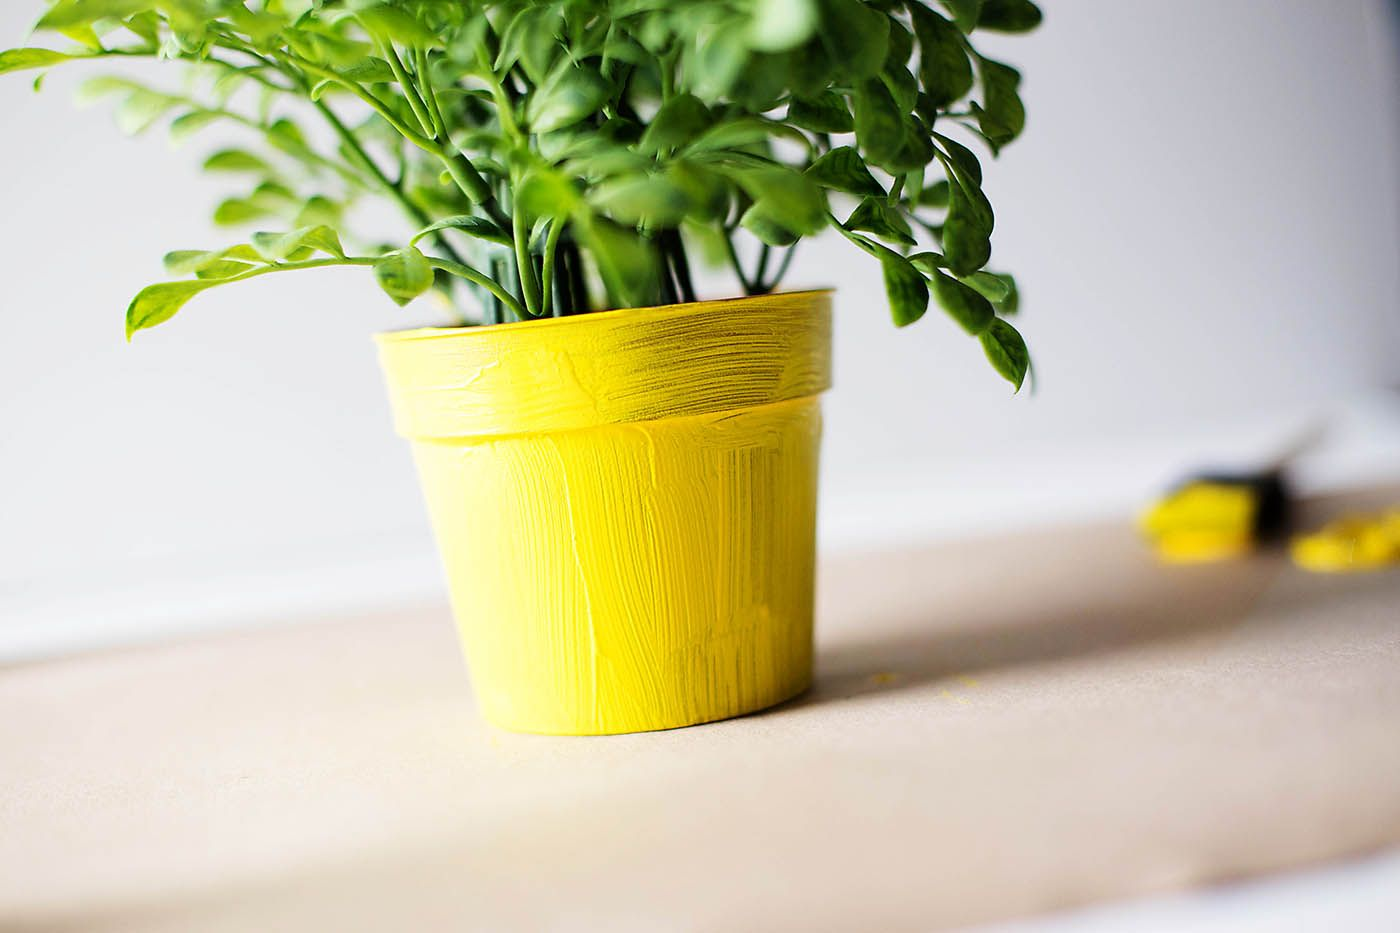 Yellow Pots For Plants   Droughtrelief org Diy Emoji Flower Pot How Are You Feeling Today Fake